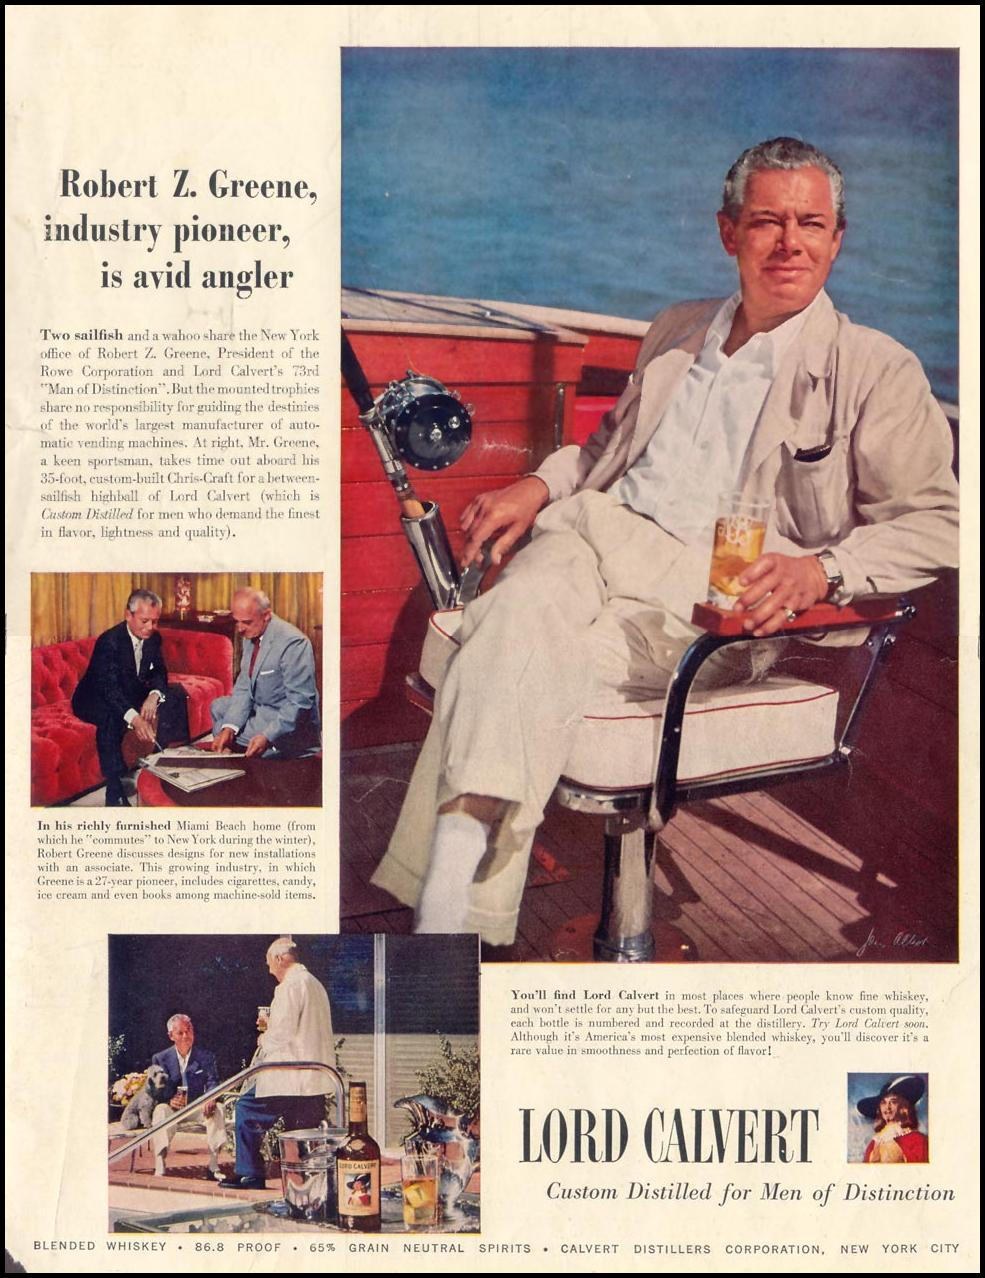 LORD CALVERT WHISKEY LIFE 07/12/1954 INSIDE BACK